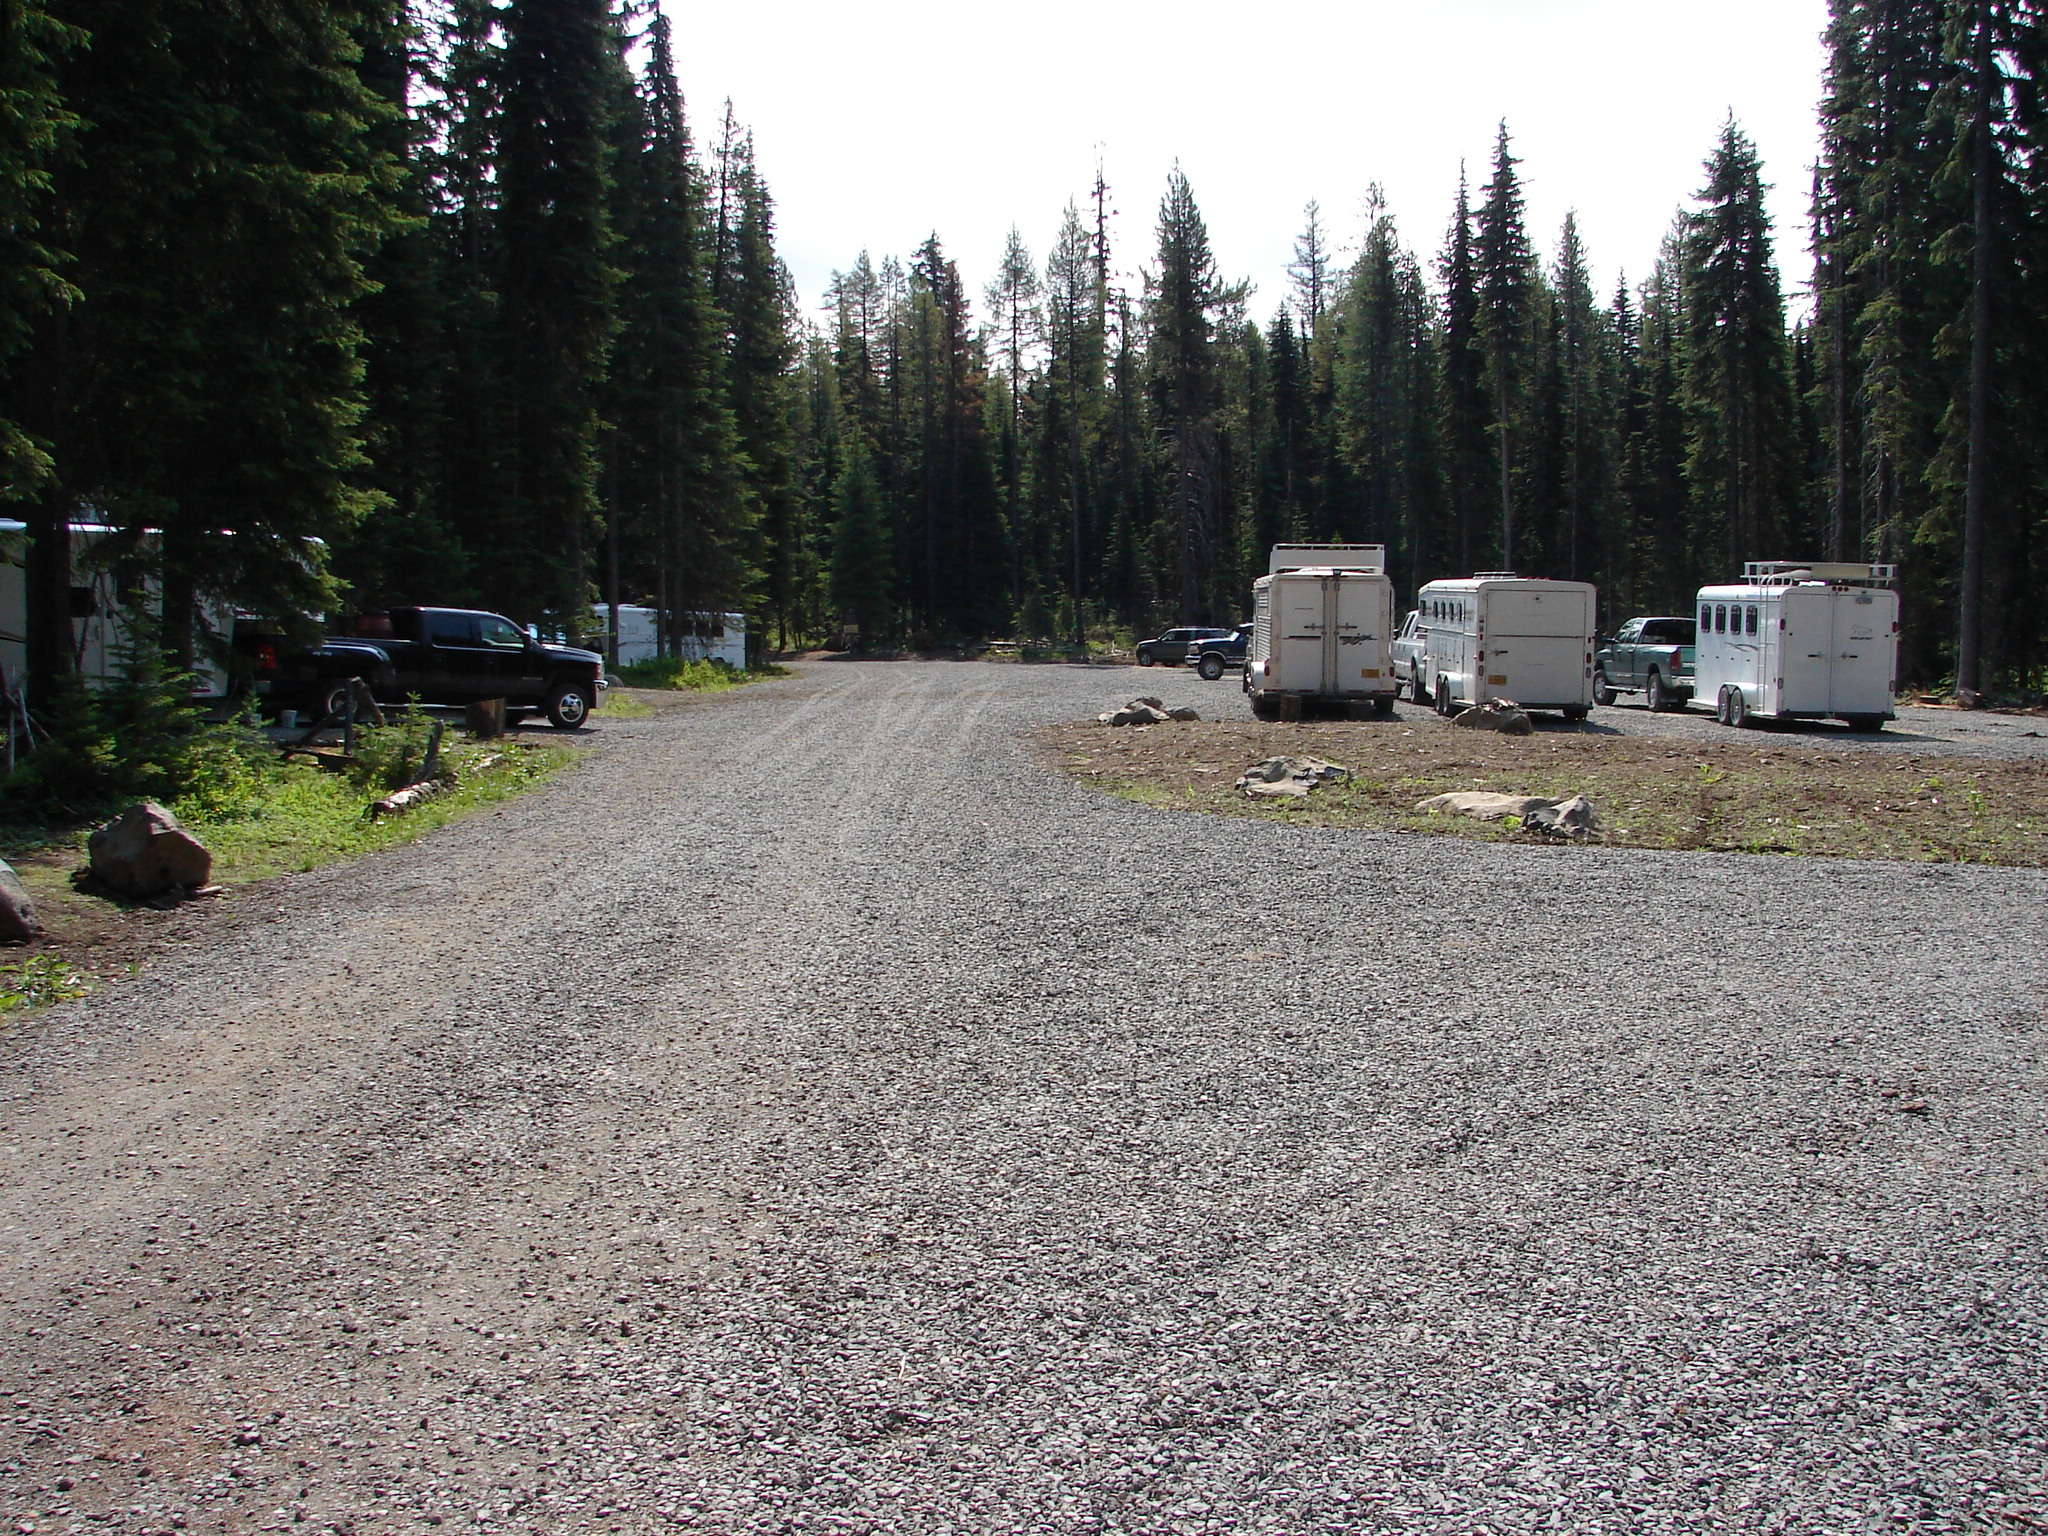 Large gravel trailhead parking area with trucks and horse trailers